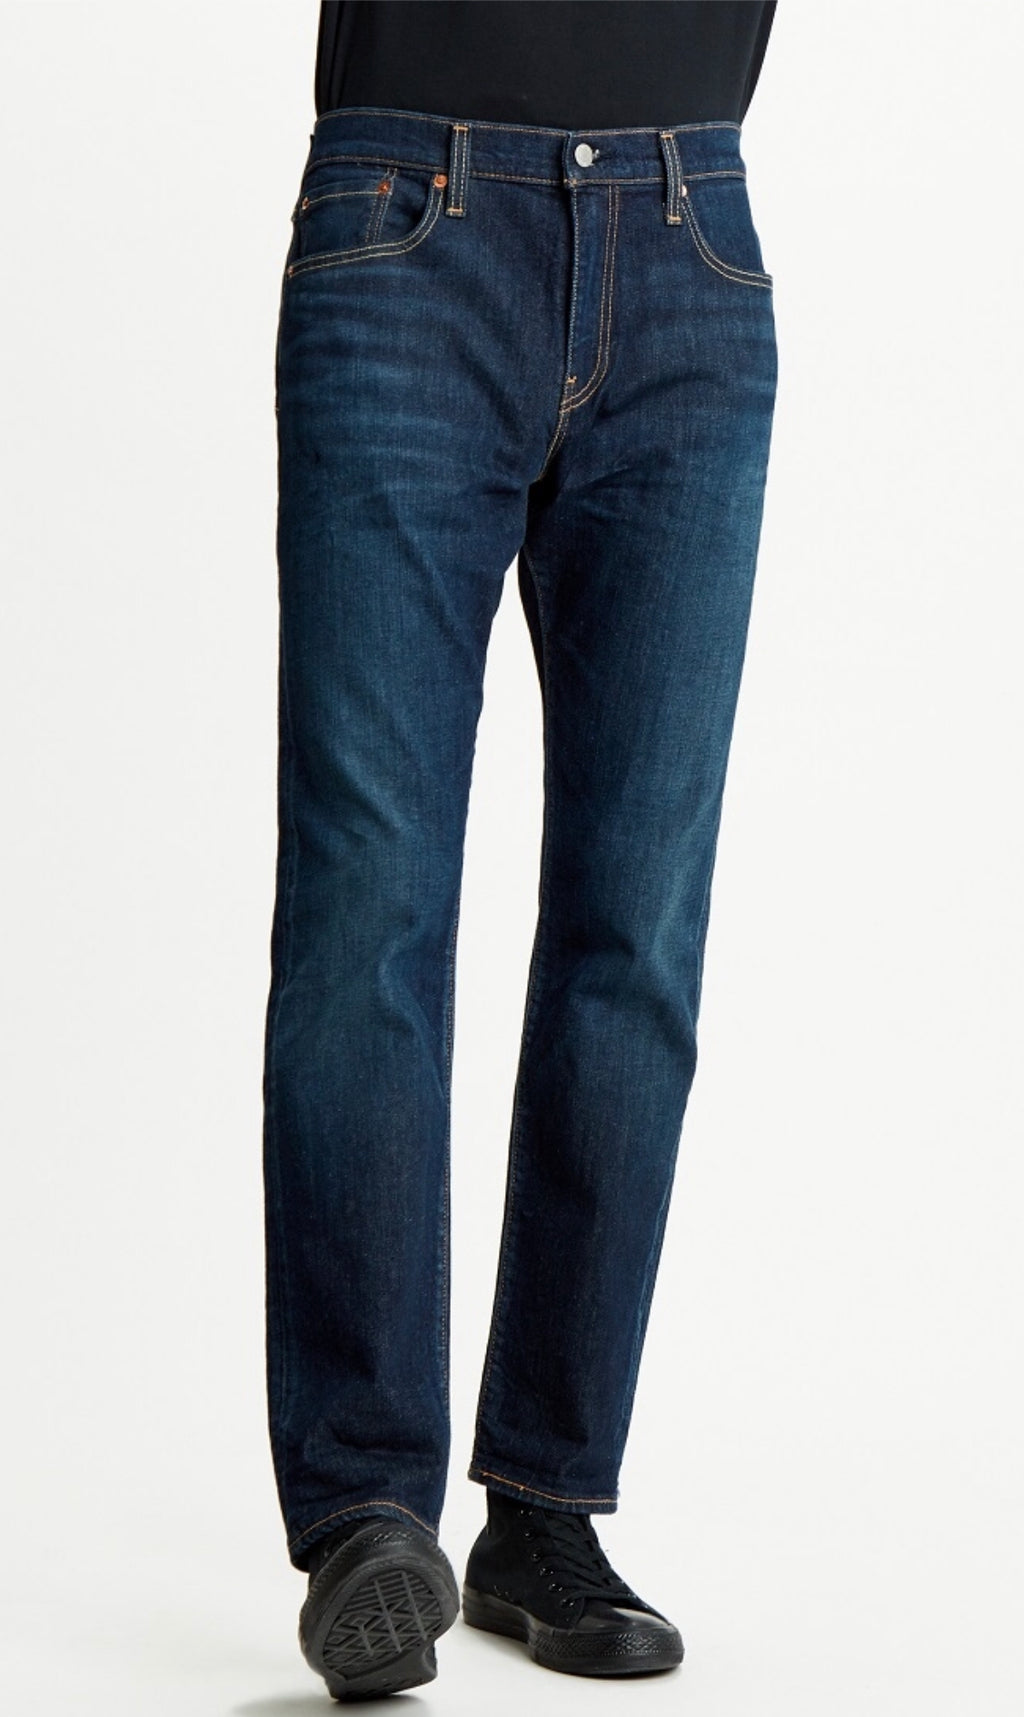 Men's 502 Taper Fit Jeans